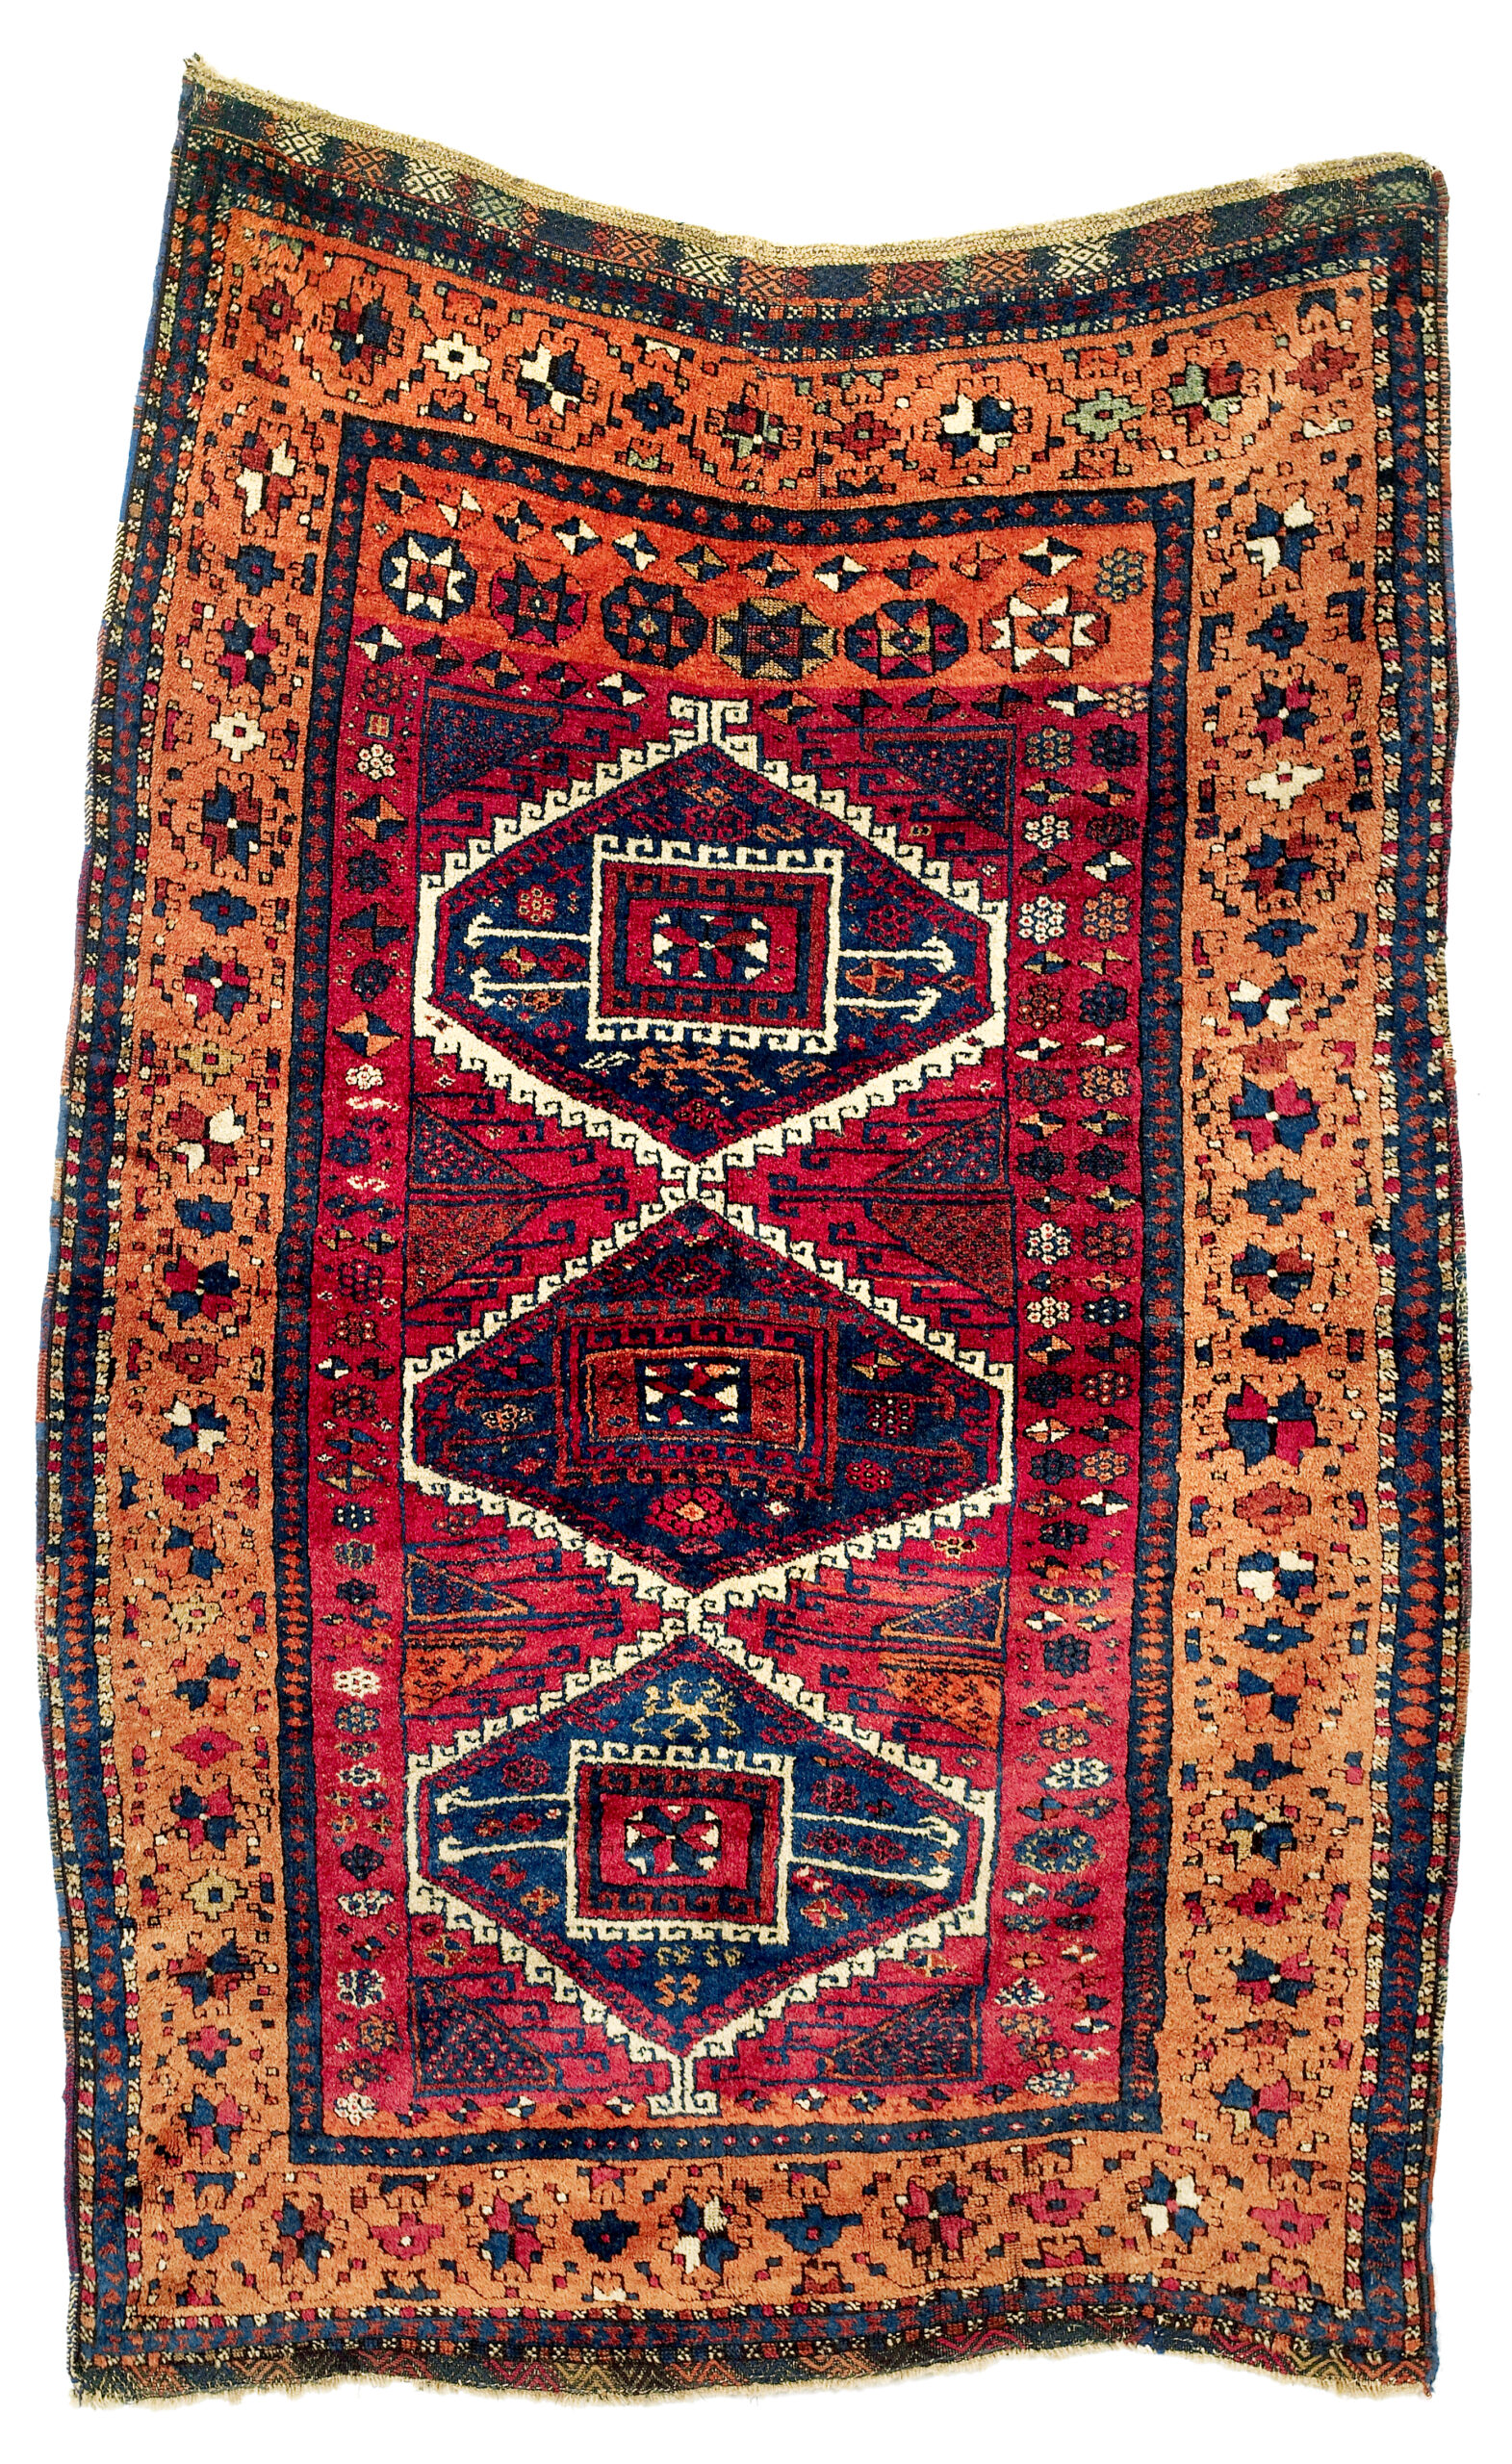 Antique Eastern Anatolian carpet, 19th century, with saturated colors